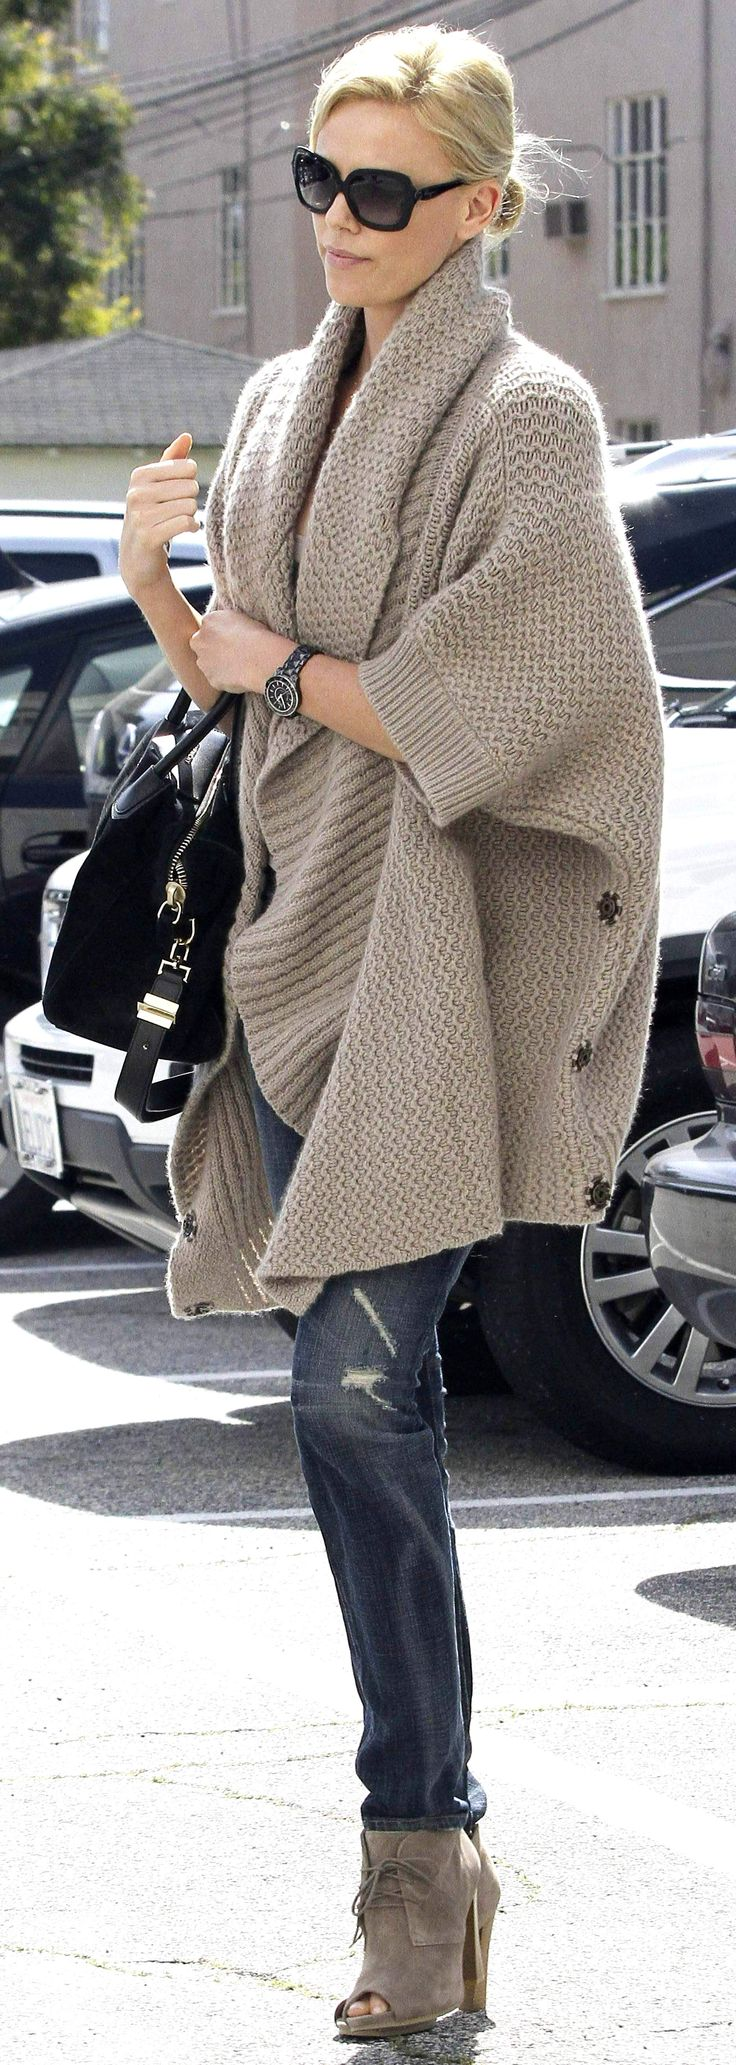 """For some time, wraps, ponchos, etc. have become my selection about any """"real"""" coat.  Have you noticed wearing coats hurts your shoulders?  Maybe it's just me.  :)   Would like some beautiful faux fur jackets or 3/4 length coats.  Dennis Basso sure makes some pretty ones~"""